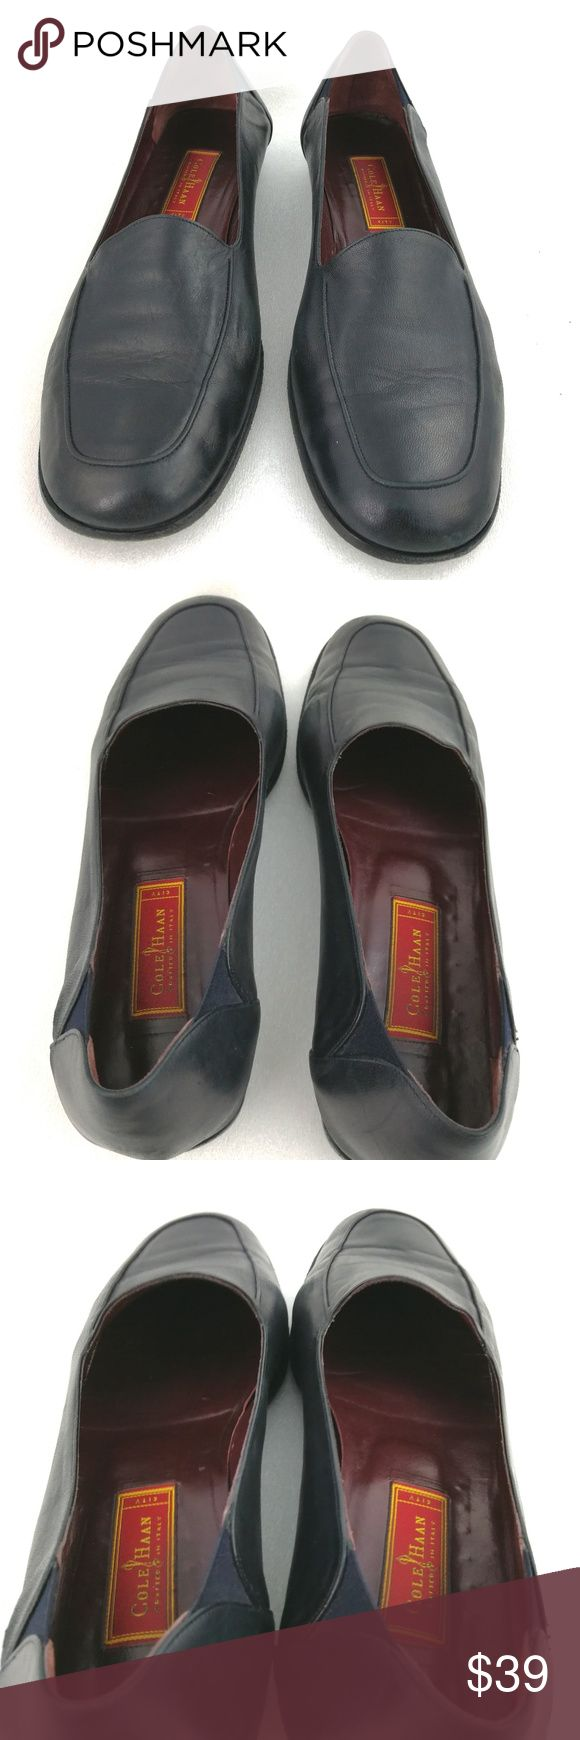 """Women's Leather Loafers 10B Black Shoes Cole Haan For sale is a pair of loafers from Cole Haan. These are from their, """"City"""" line and are made in Italy. The leather is extra soft and supple.   Size: 10B  I will ship your shoes within 24 hours  Thank you Cole Haan Shoes Flats & Loafers"""